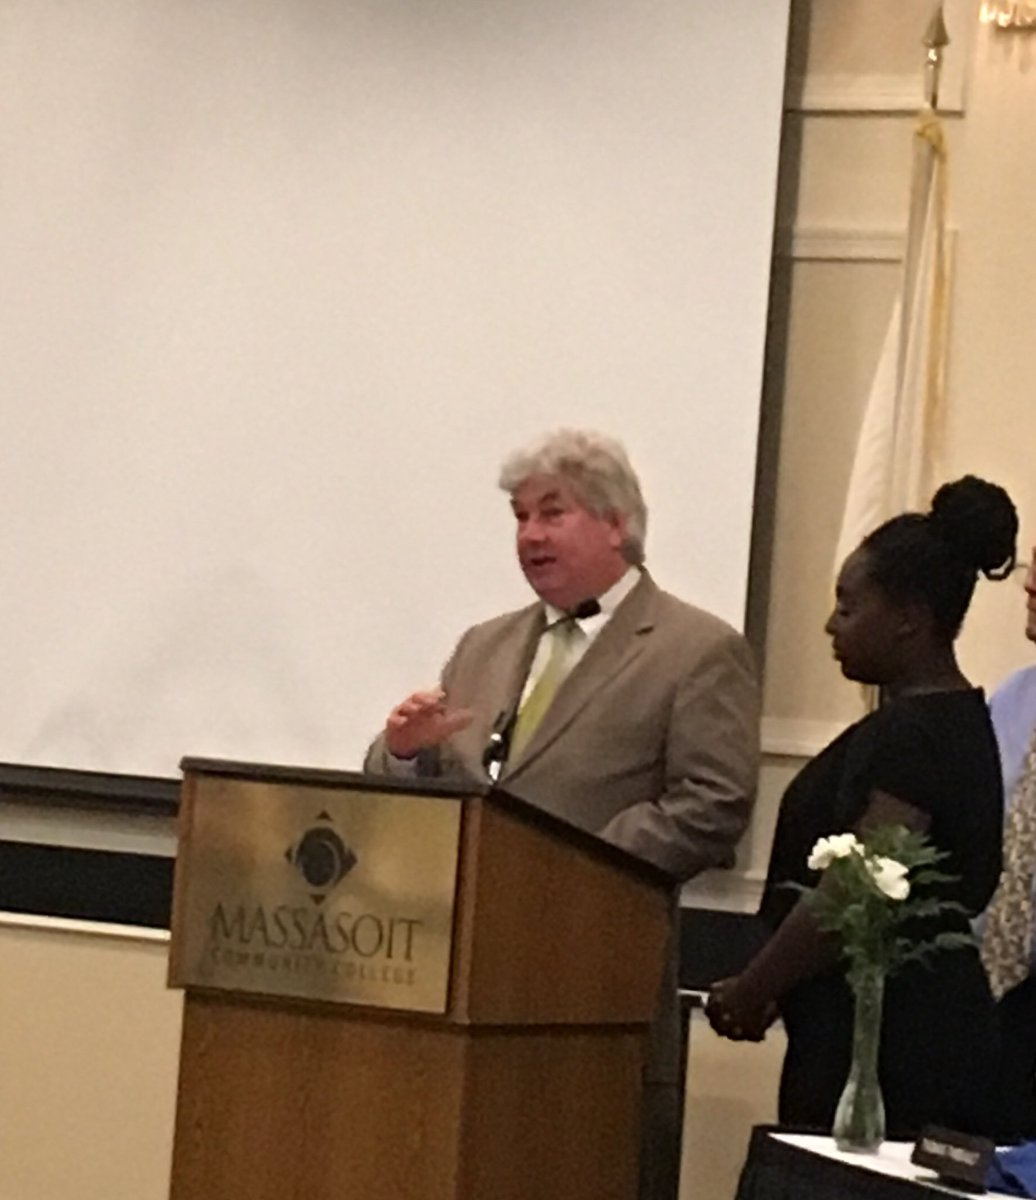 State Senator Michael Brady speaking today at the Brockton Housing Authority's Annual Meeting. #BHA #brocktonhousingauthority #publichousing #statehousing #federalhousing #management #maintenance #section8 #annualmeeting #Brockton #MA<br>http://pic.twitter.com/a62GBfoC58